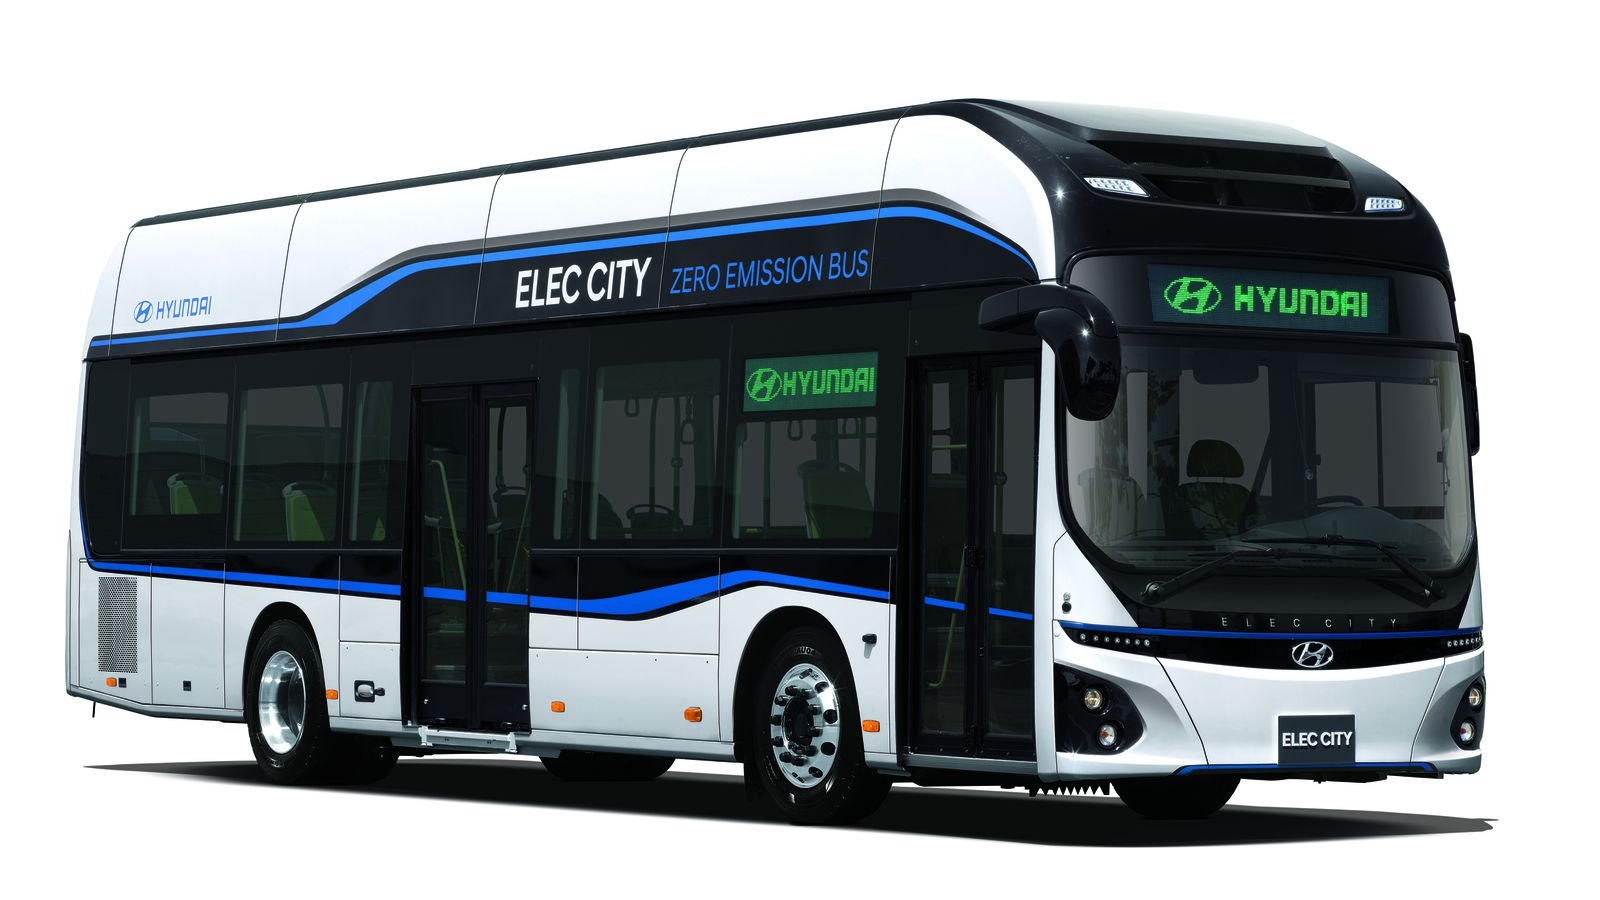 Hyundai's new electric bus has 180 miles of range and ...